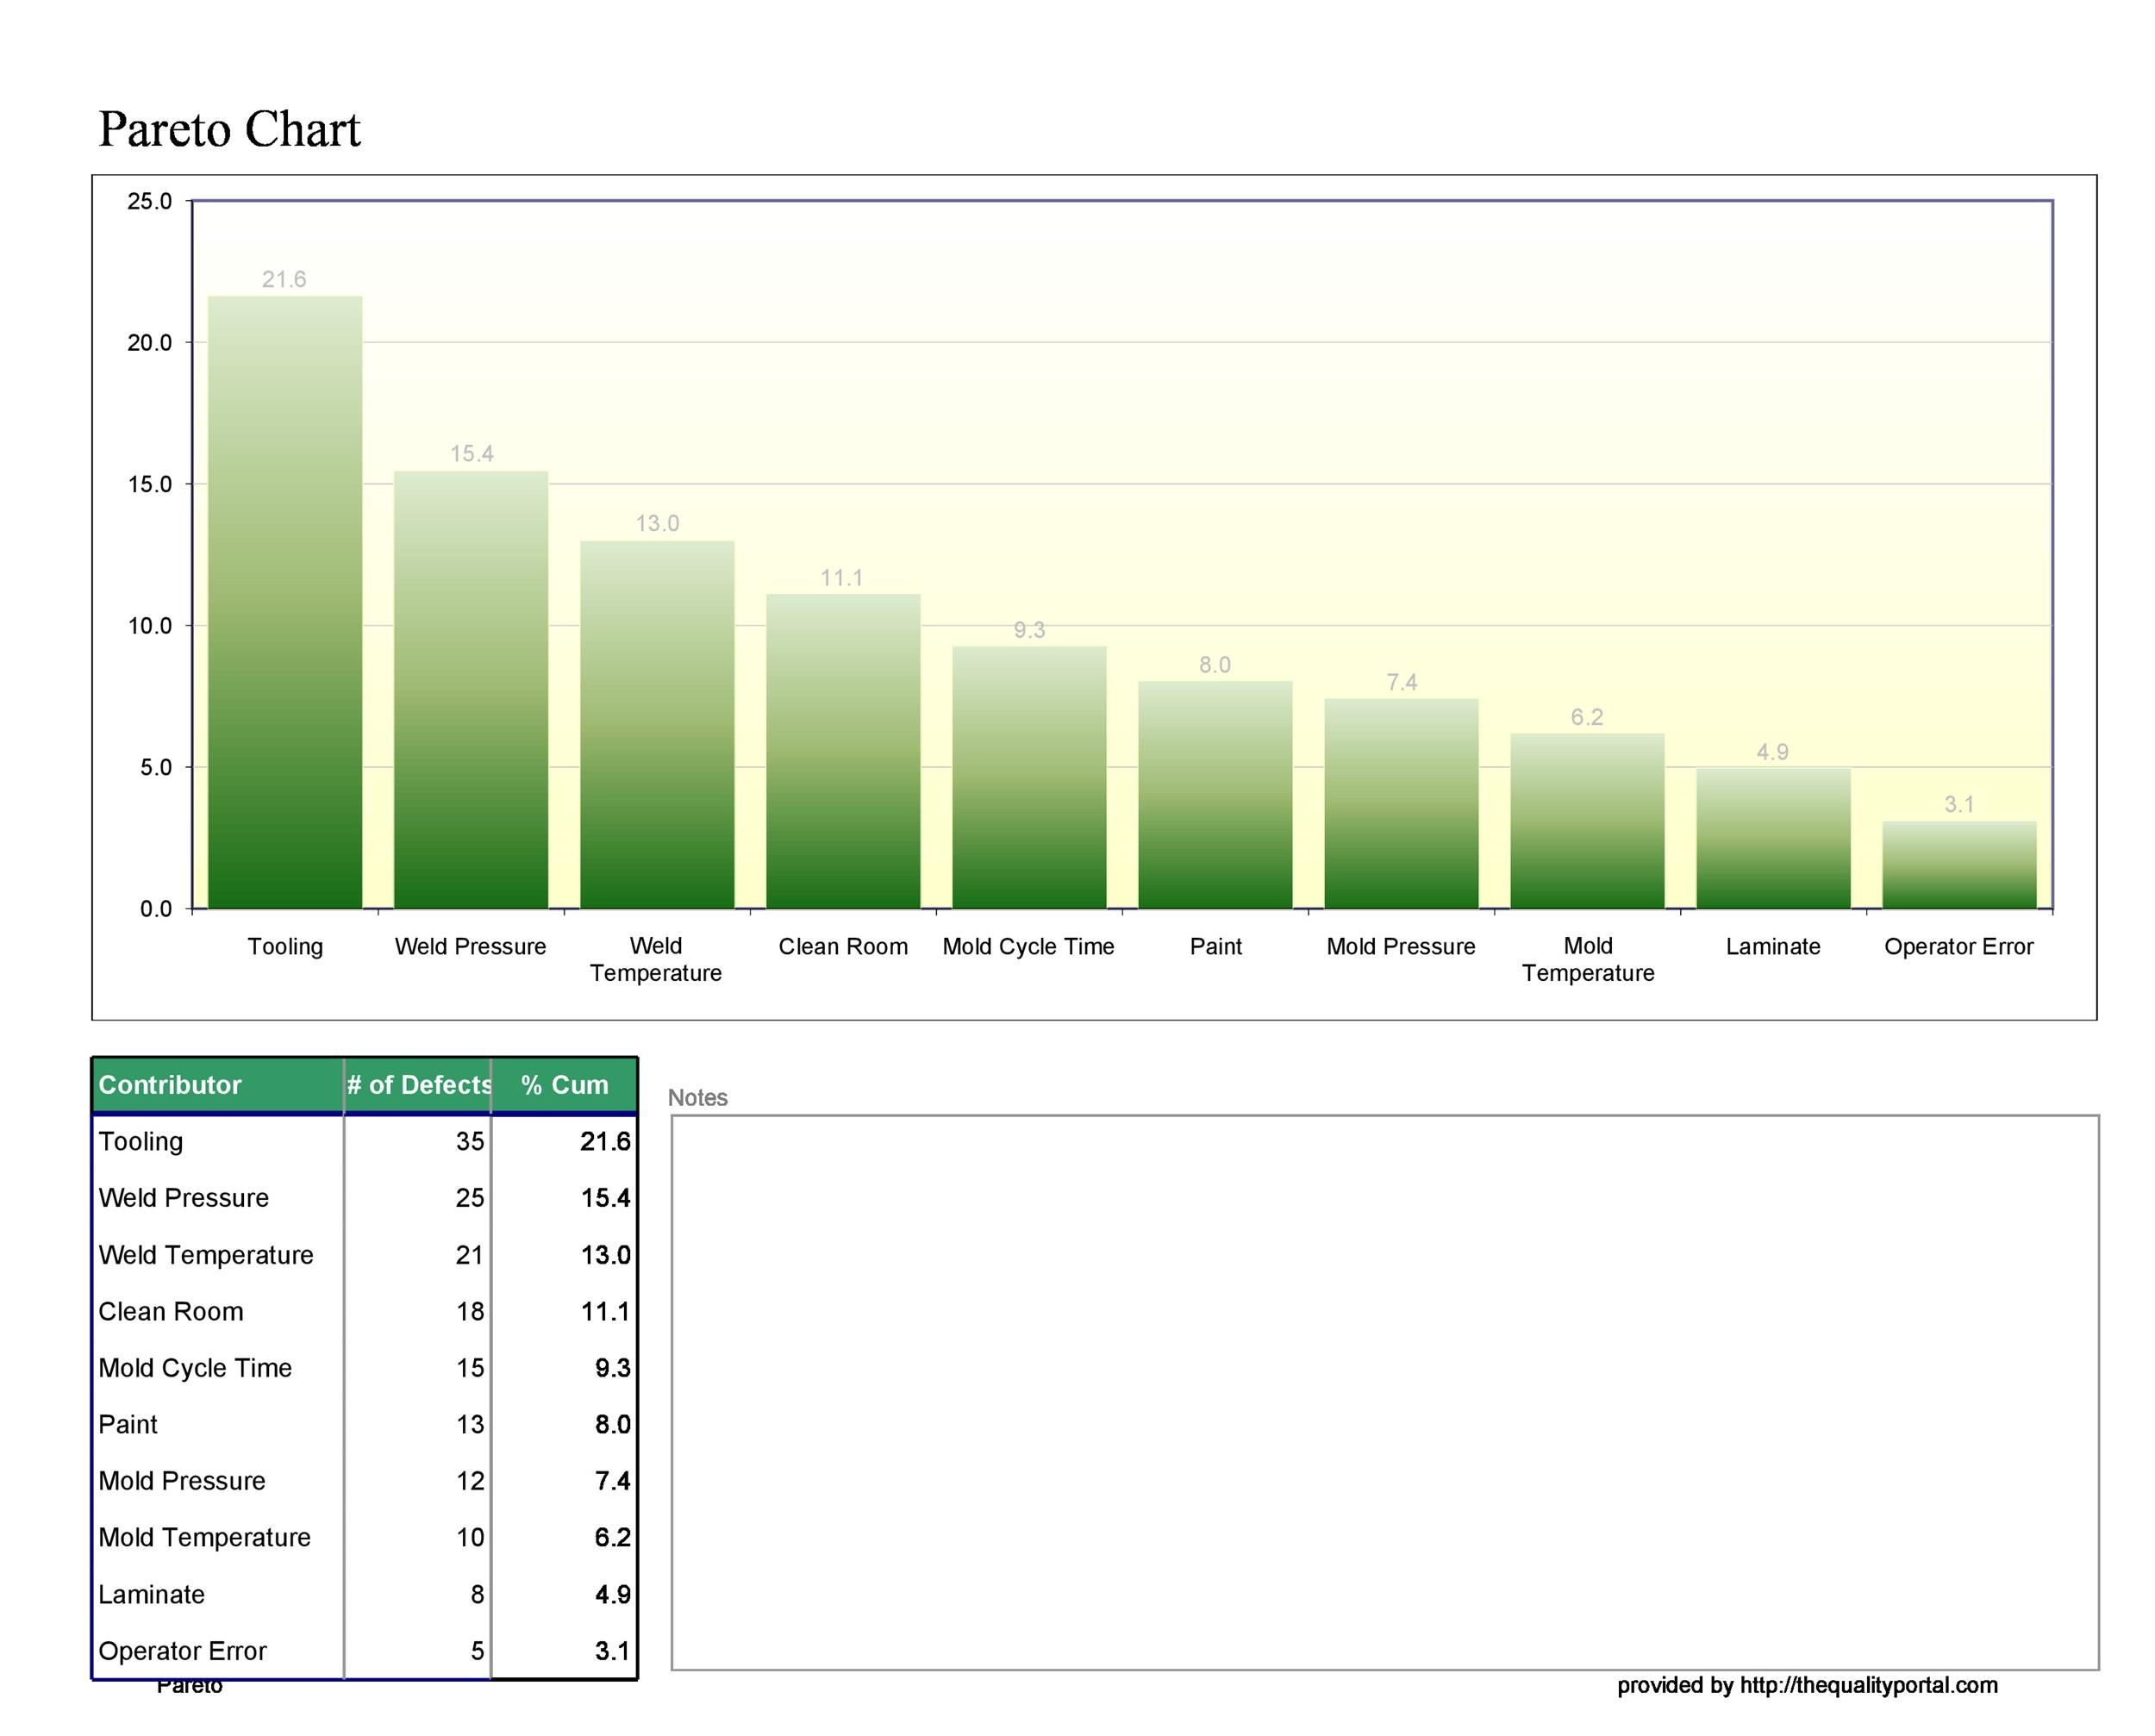 007 Marvelou Pareto Chart Excel Template High Resolution  2016 Download Microsoft Control MFull